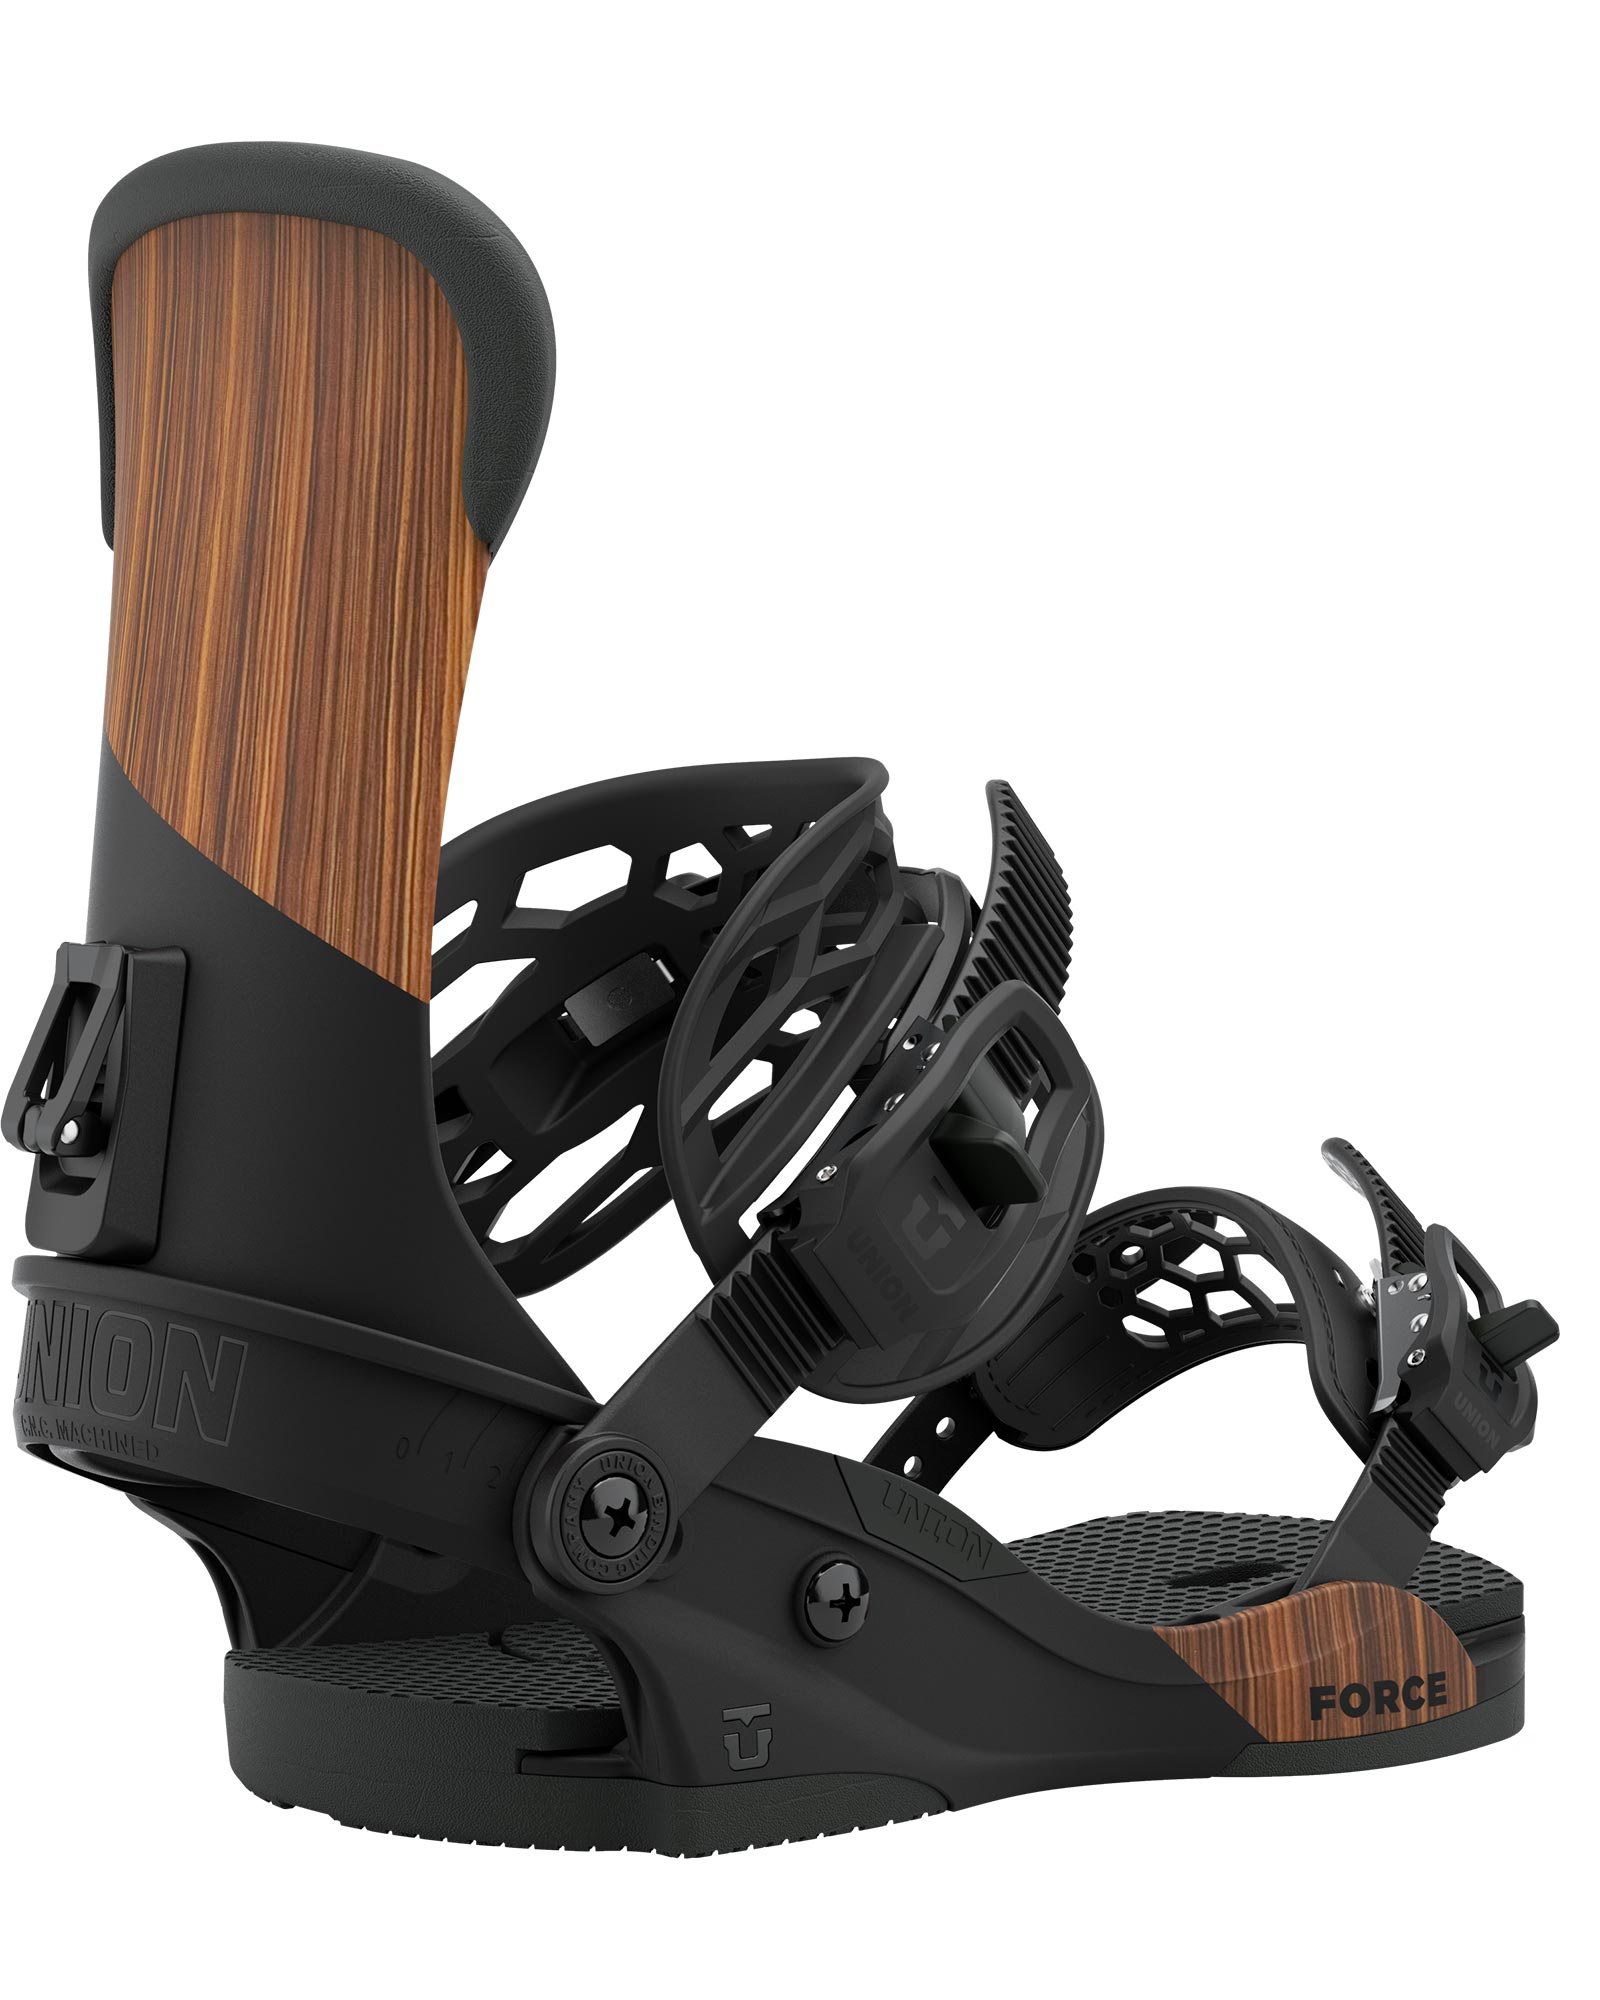 Union Men's Force Snowboard Bindings 2020 / 2021 0